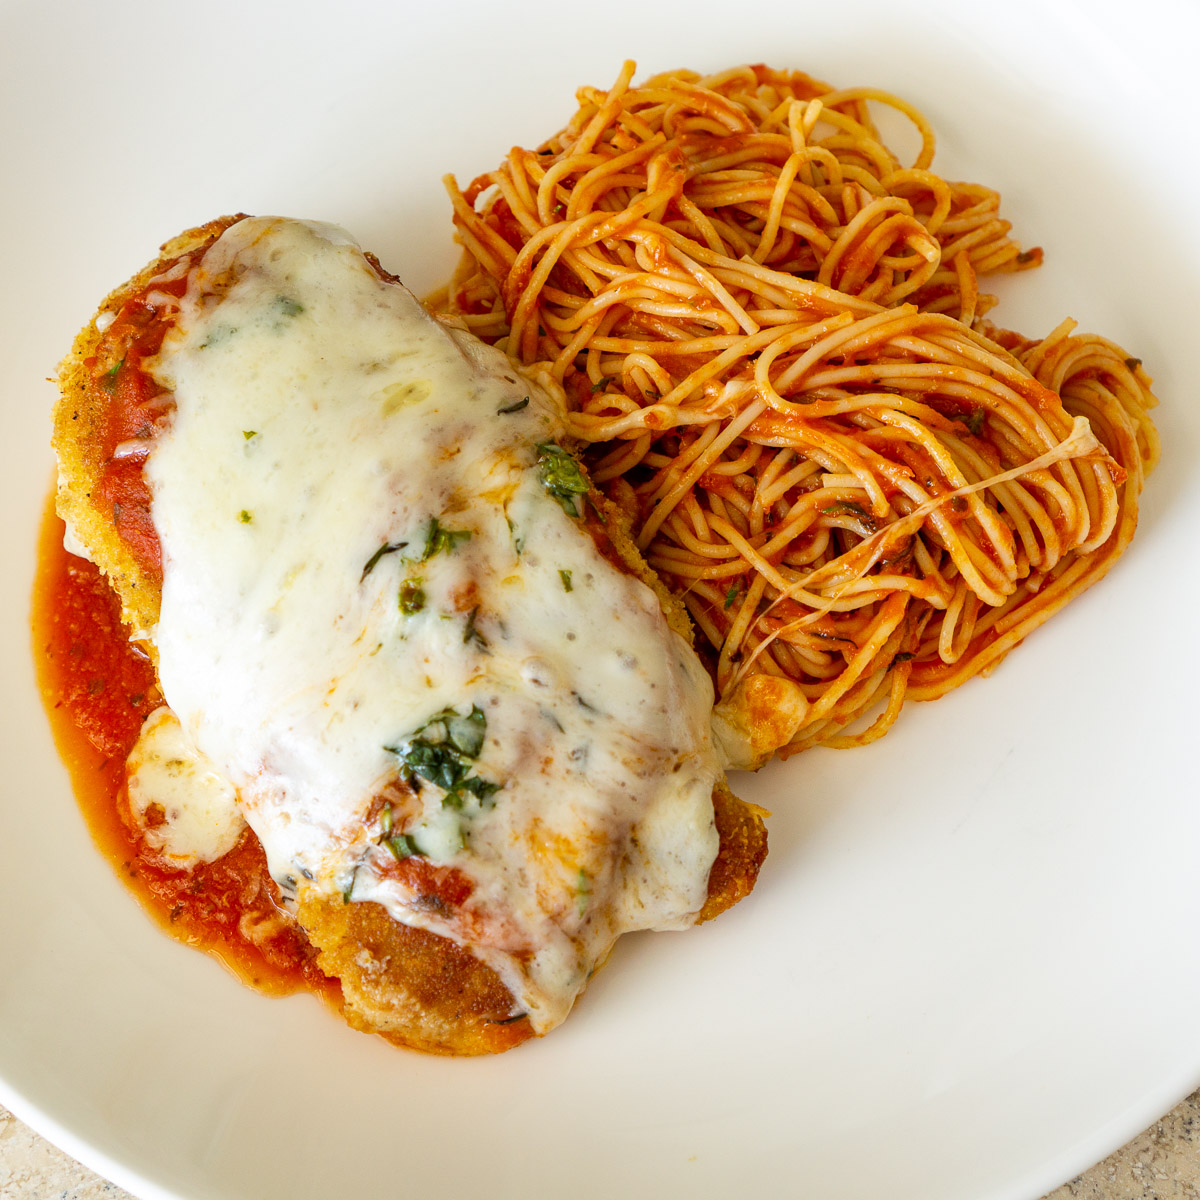 chicken parm with spaghetti on a plate - made from a Raddish Kids recipe